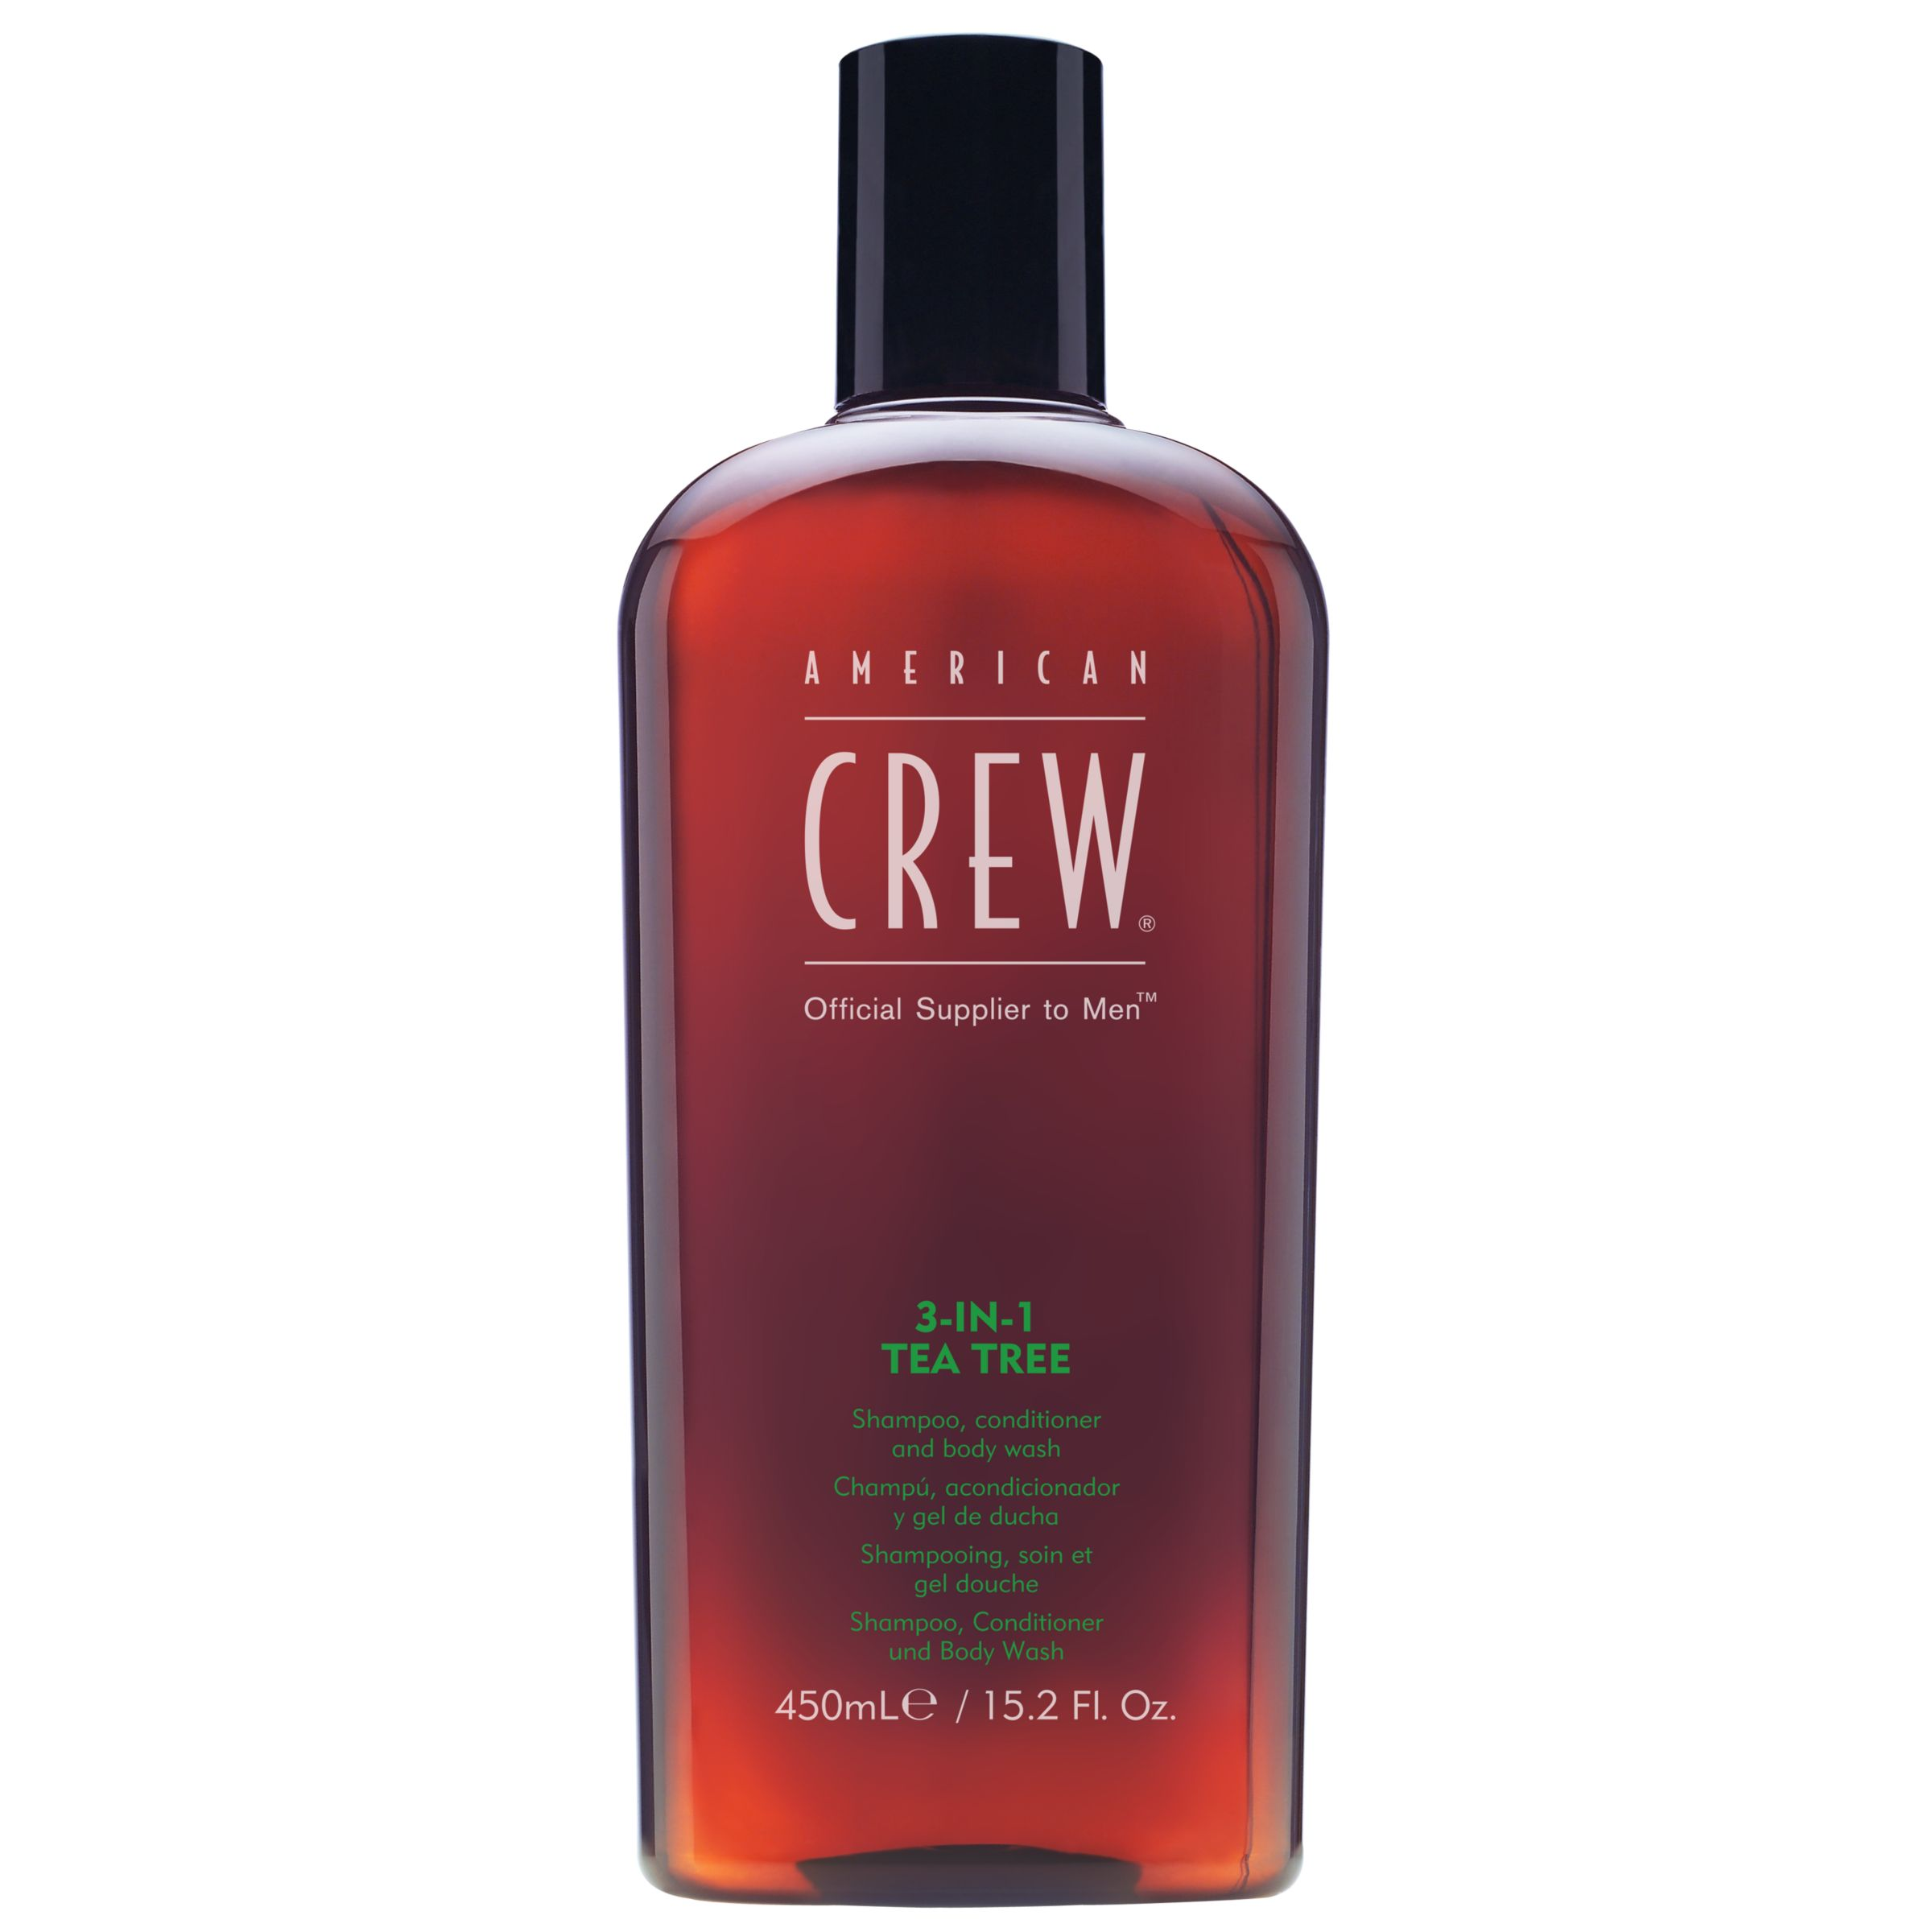 American Crew American Crew 3-In-1 Tea Tree Shampoo, Conditioner & Body Wash, 450ml